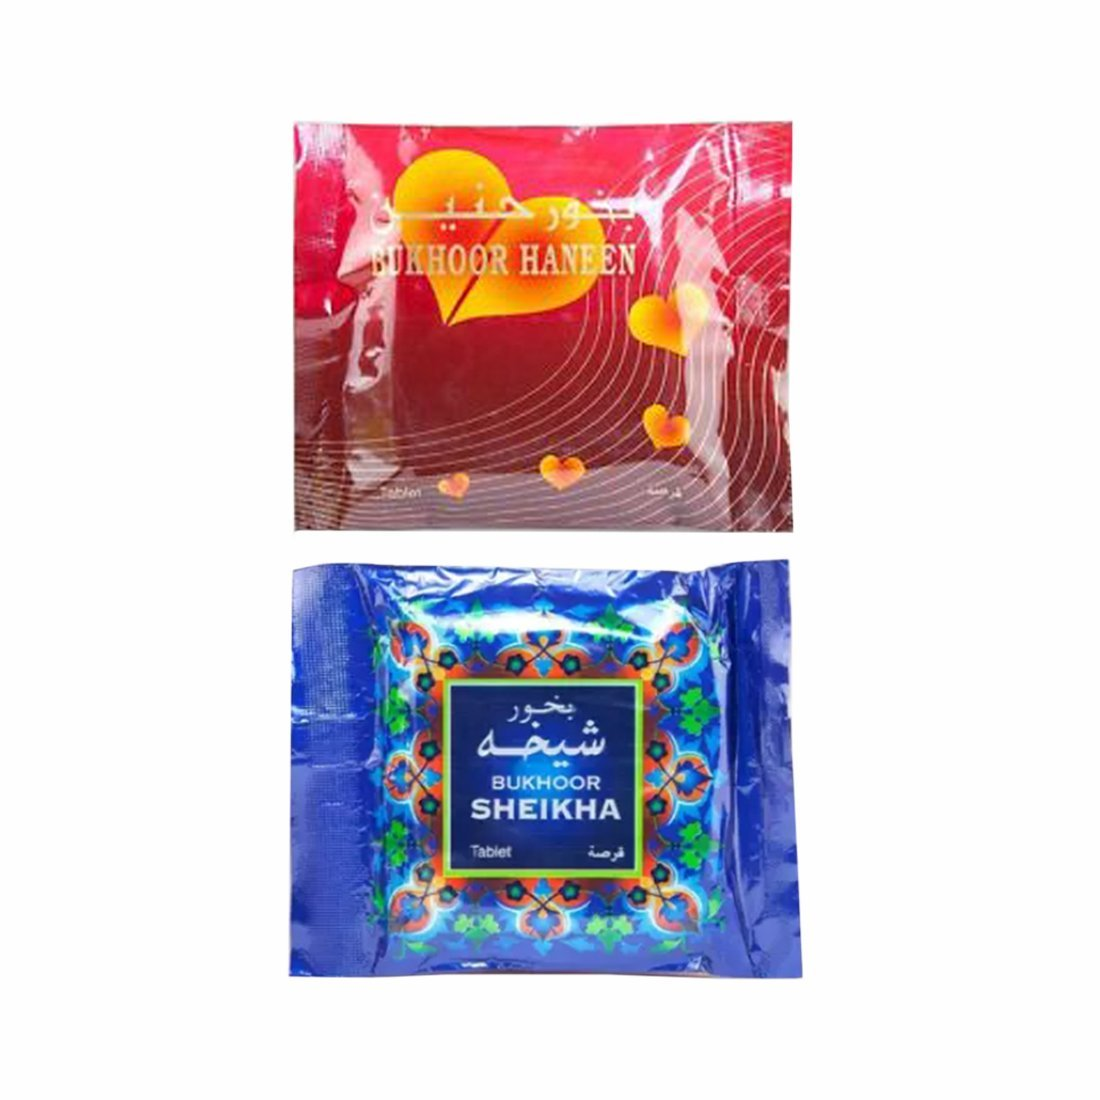 Al Haramain Bukhoor Haneen & Sheikha For Bakhoor Burners Pack of 2